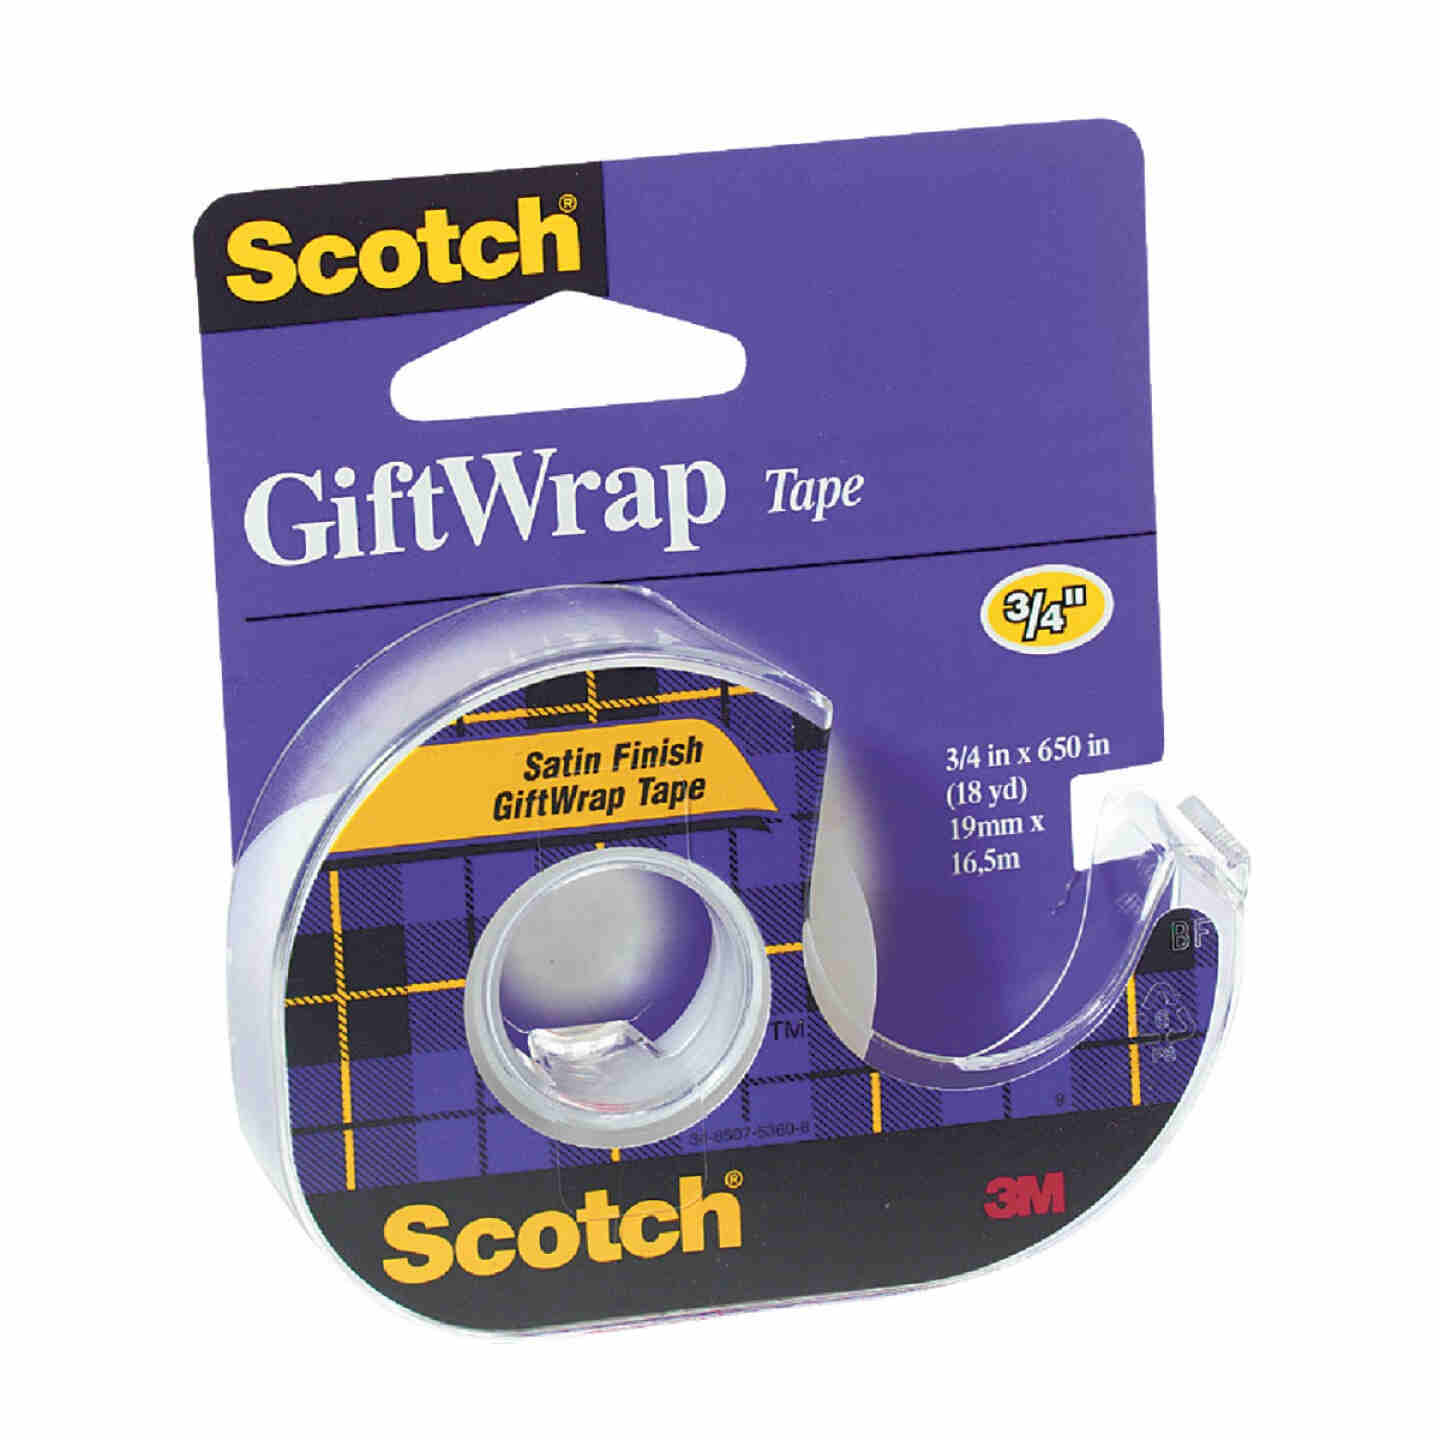 3M Scotch 3/4 In. x 650 In. Gift-Wrap Transparent Tape Image 1